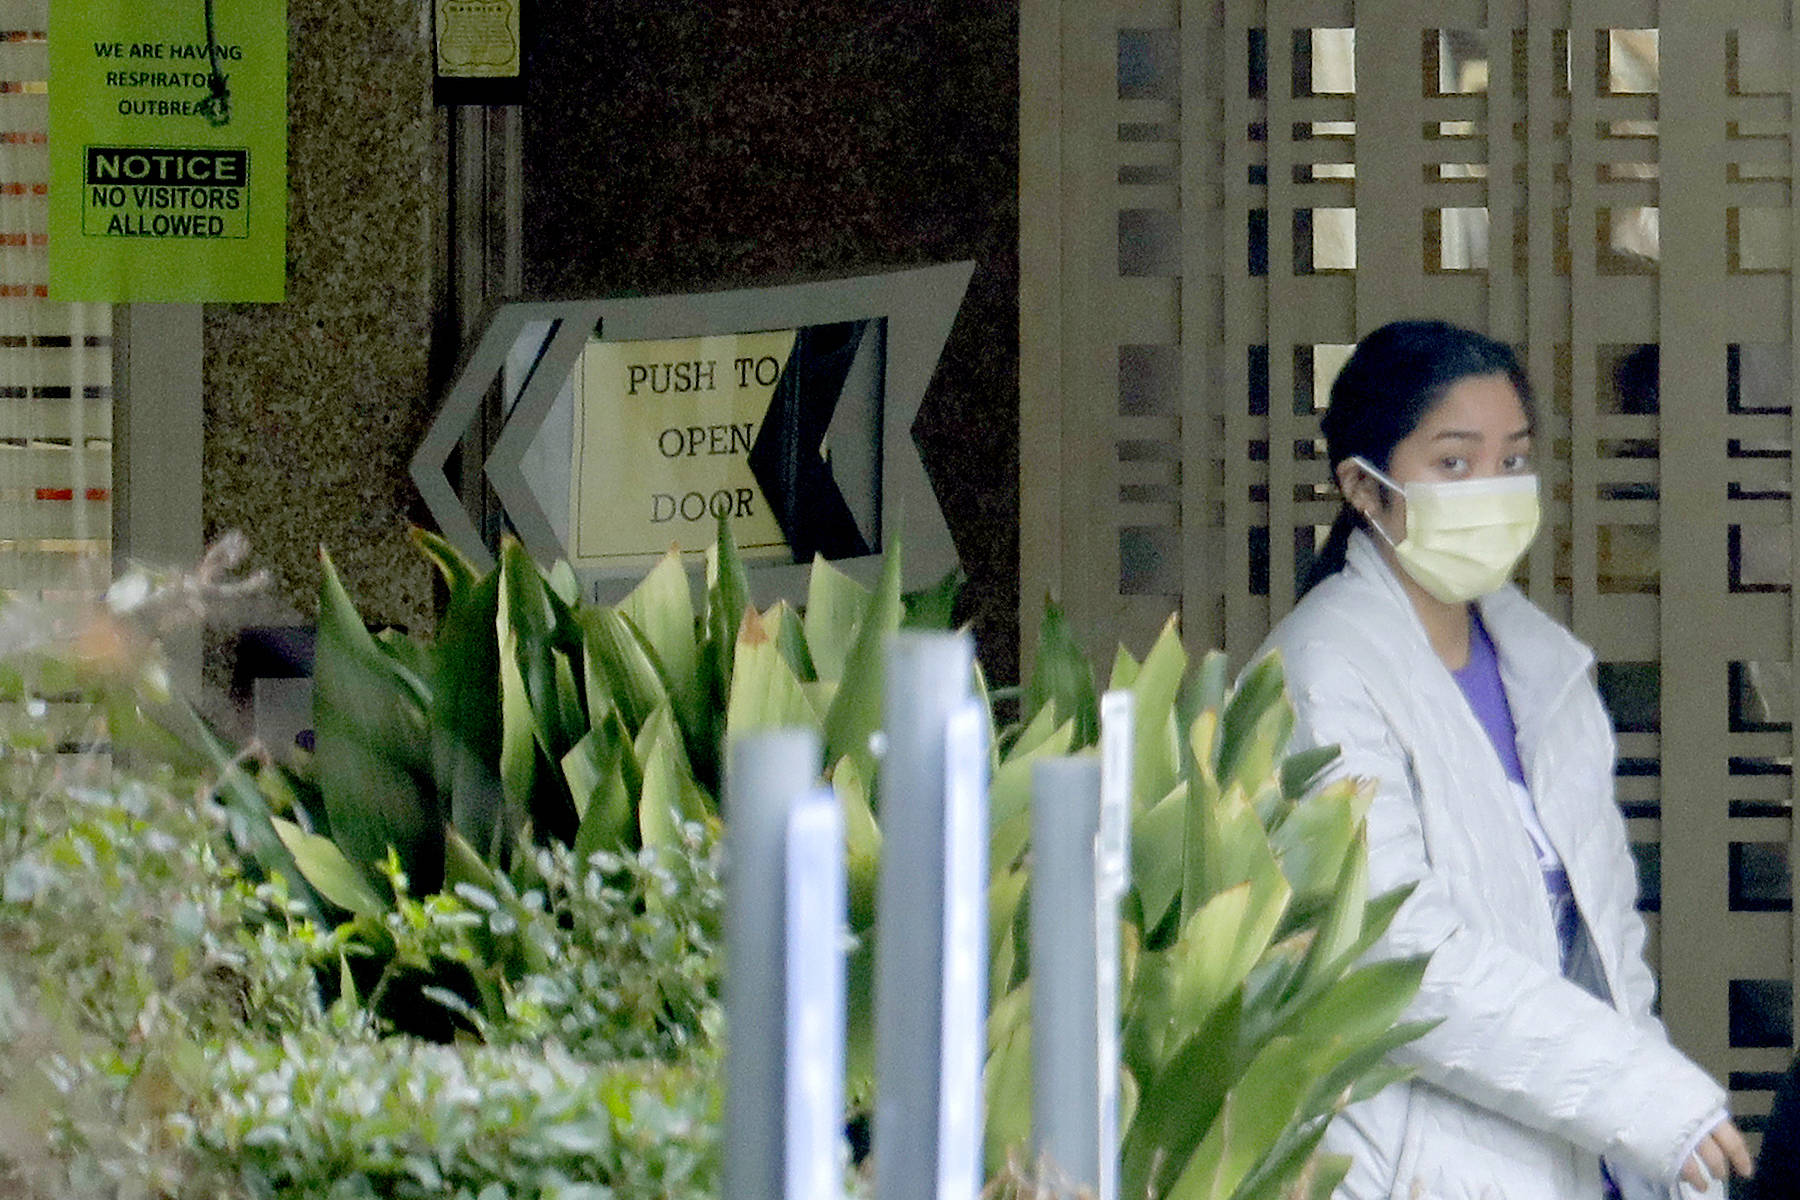 FILE - A person wearing a mask walks past a sign banning visitors at the Life Care Center in Kirkland, Wash., near Seattle, Monday, March 2, 2020. Dozens of people associated with the facility are reportedly ill with respiratory symptoms or hospitalized and are being tested for the COVID-19 virus. (AP Photo/Ted S. Warren)